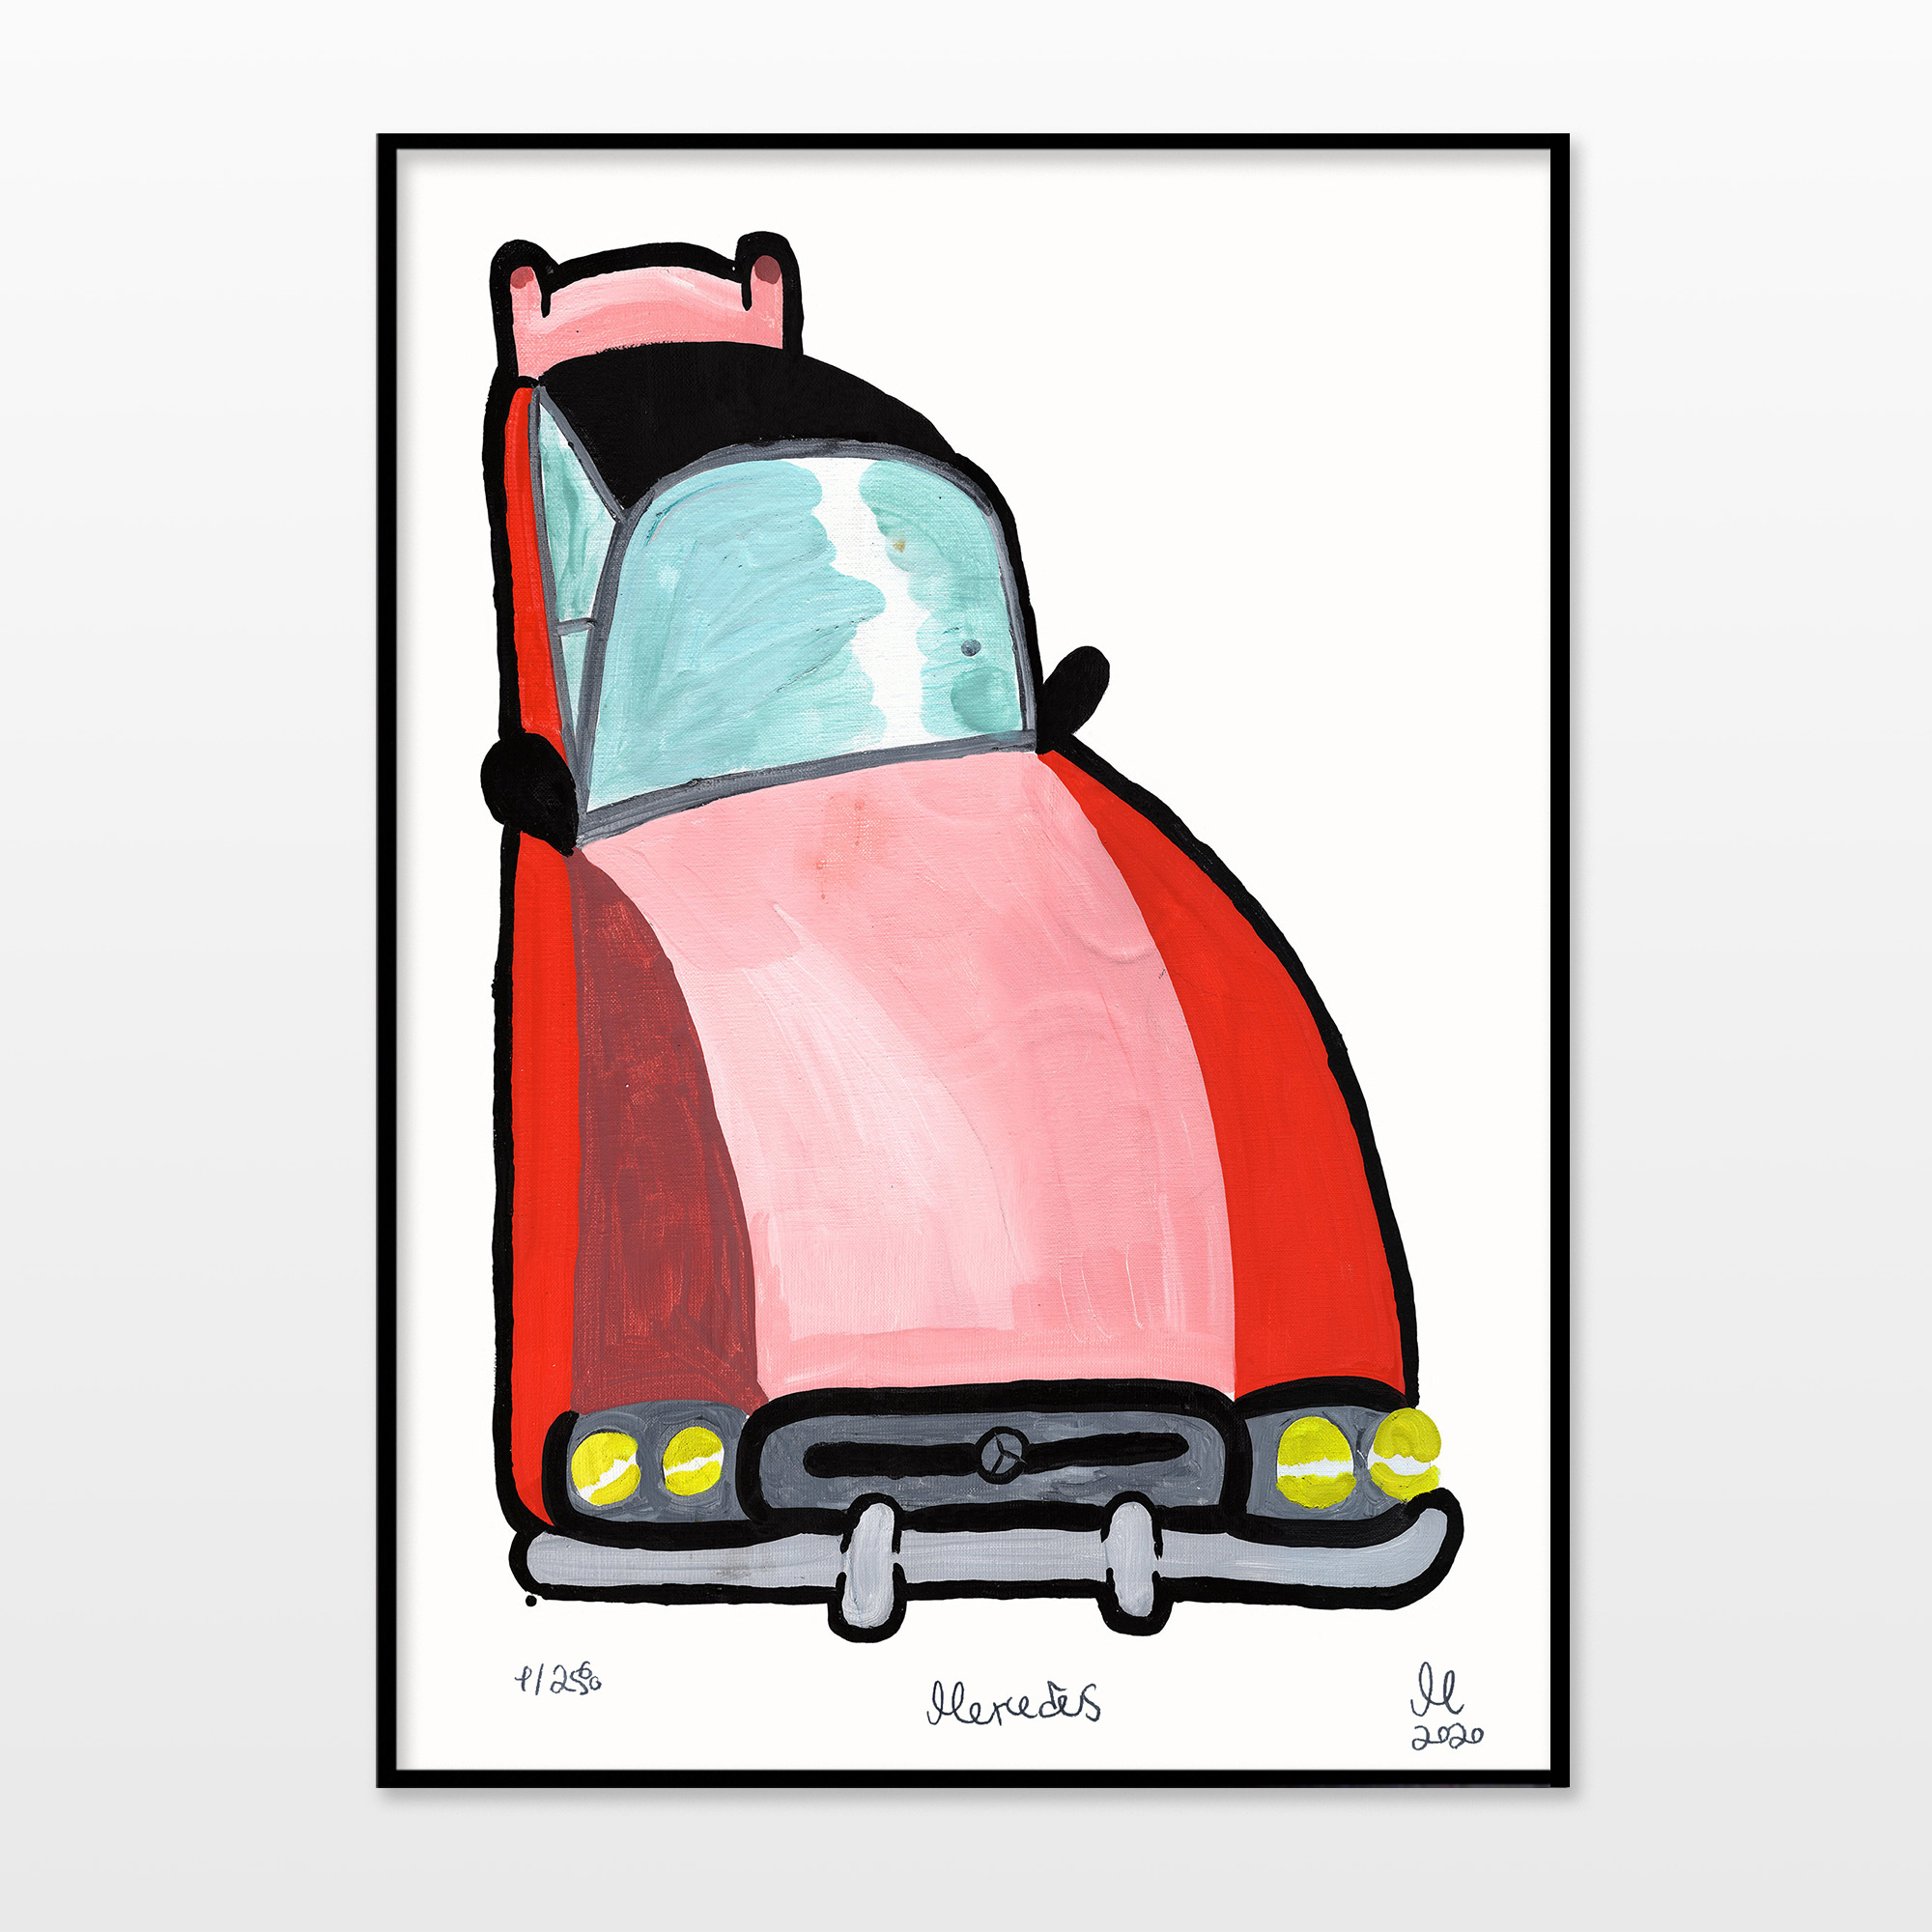 posters-prints, giclee-print, family-friendly, figurative, illustrative, cartoons, movement, technology, transportation, pink, red, turquoise, ink, cars, contemporary-art, danish, decorative, design, interior, interior-design, modern, modern-art, nordic, pop-art, posters, scandinavien, Buy original high quality art. Paintings, drawings, limited edition prints & posters by talented artists.